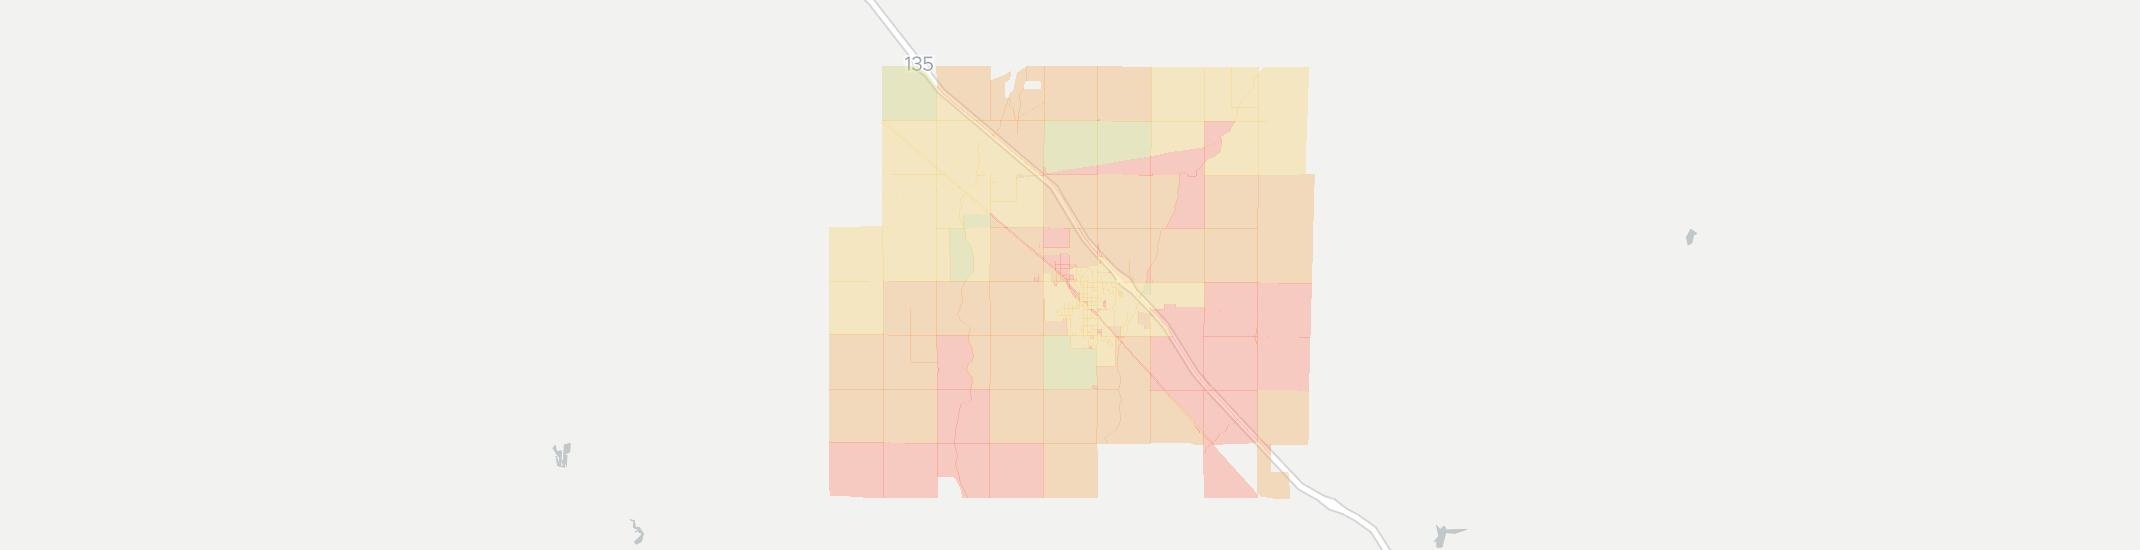 hesston internet competition map  click for interactive map